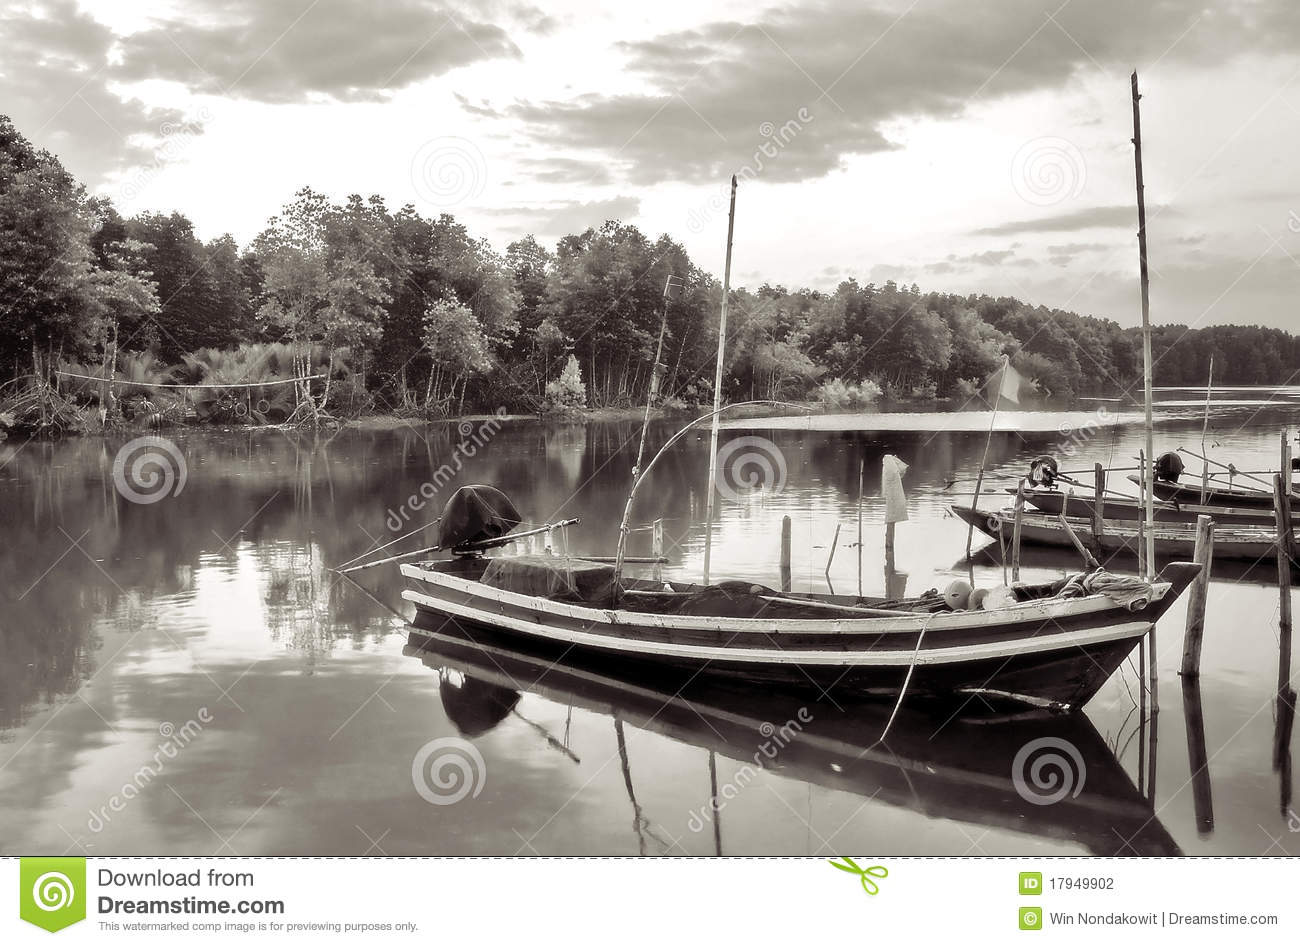 Barcos no canal